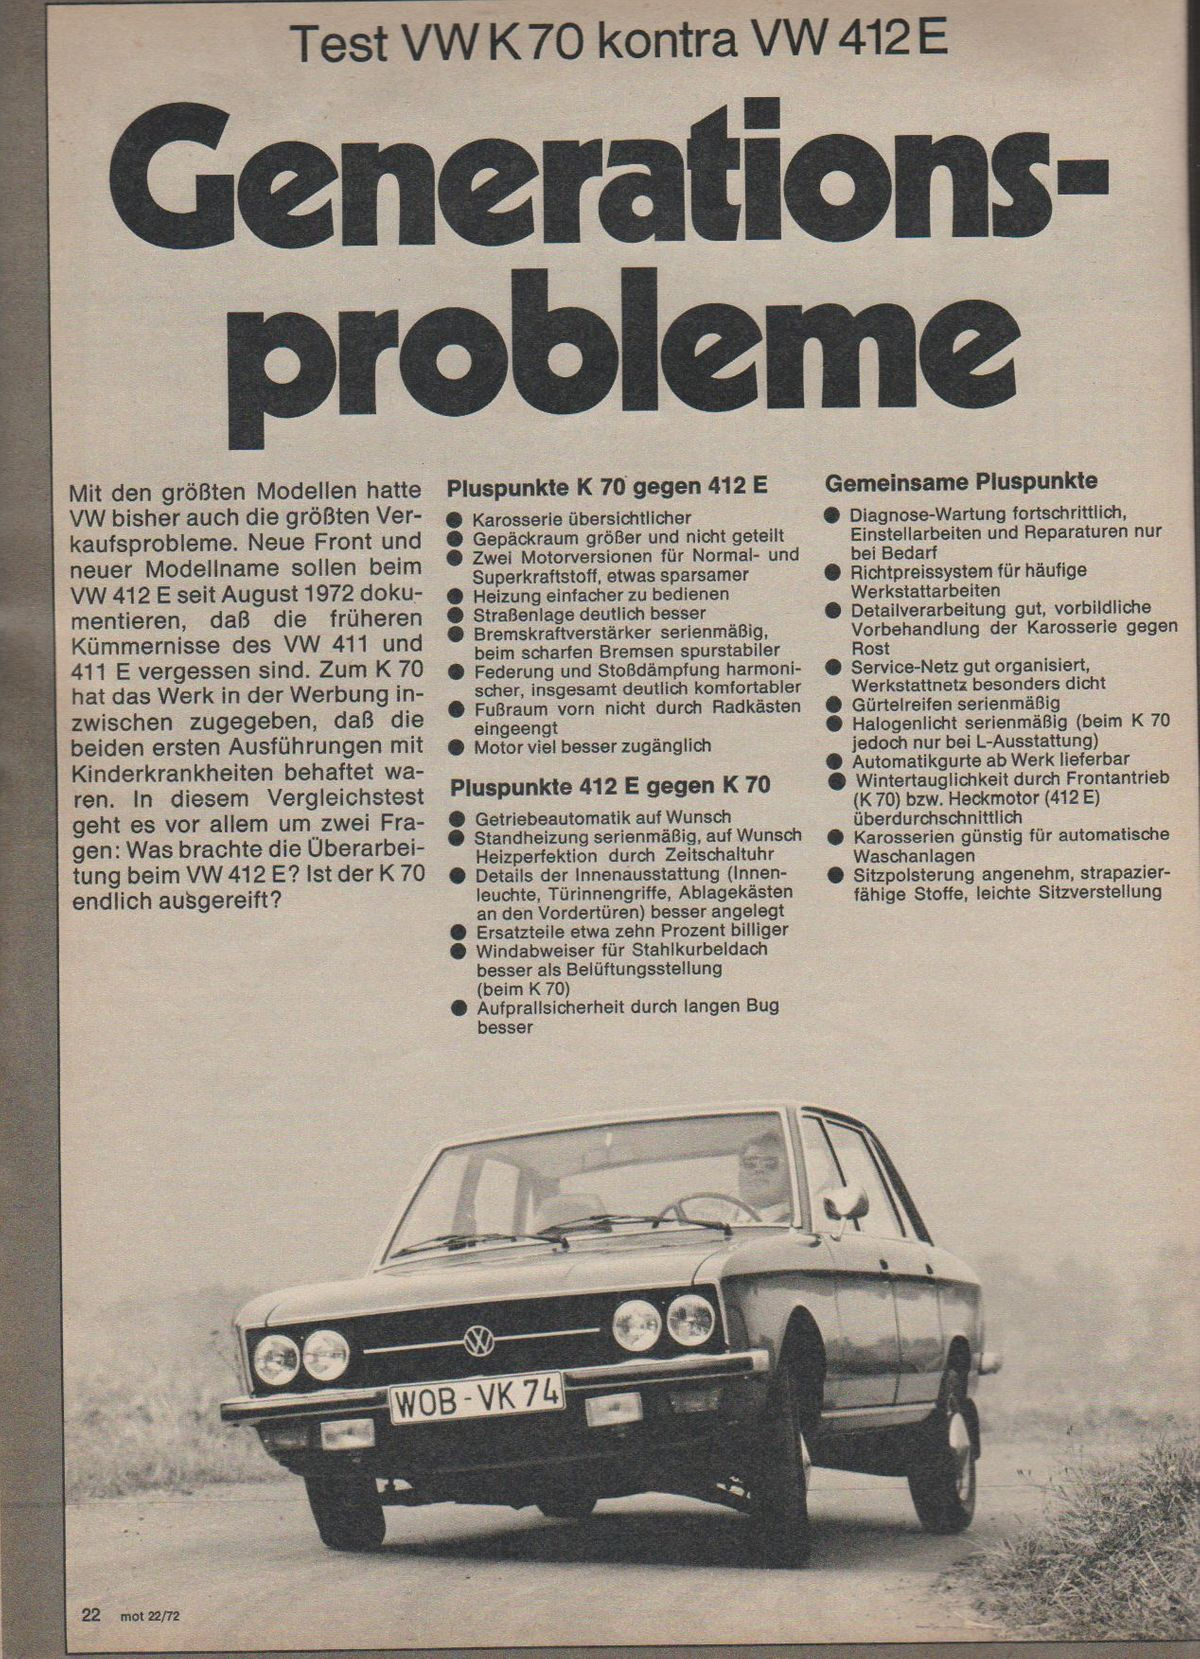 mot auto-journal 26 - 04.11.1972 S. 22